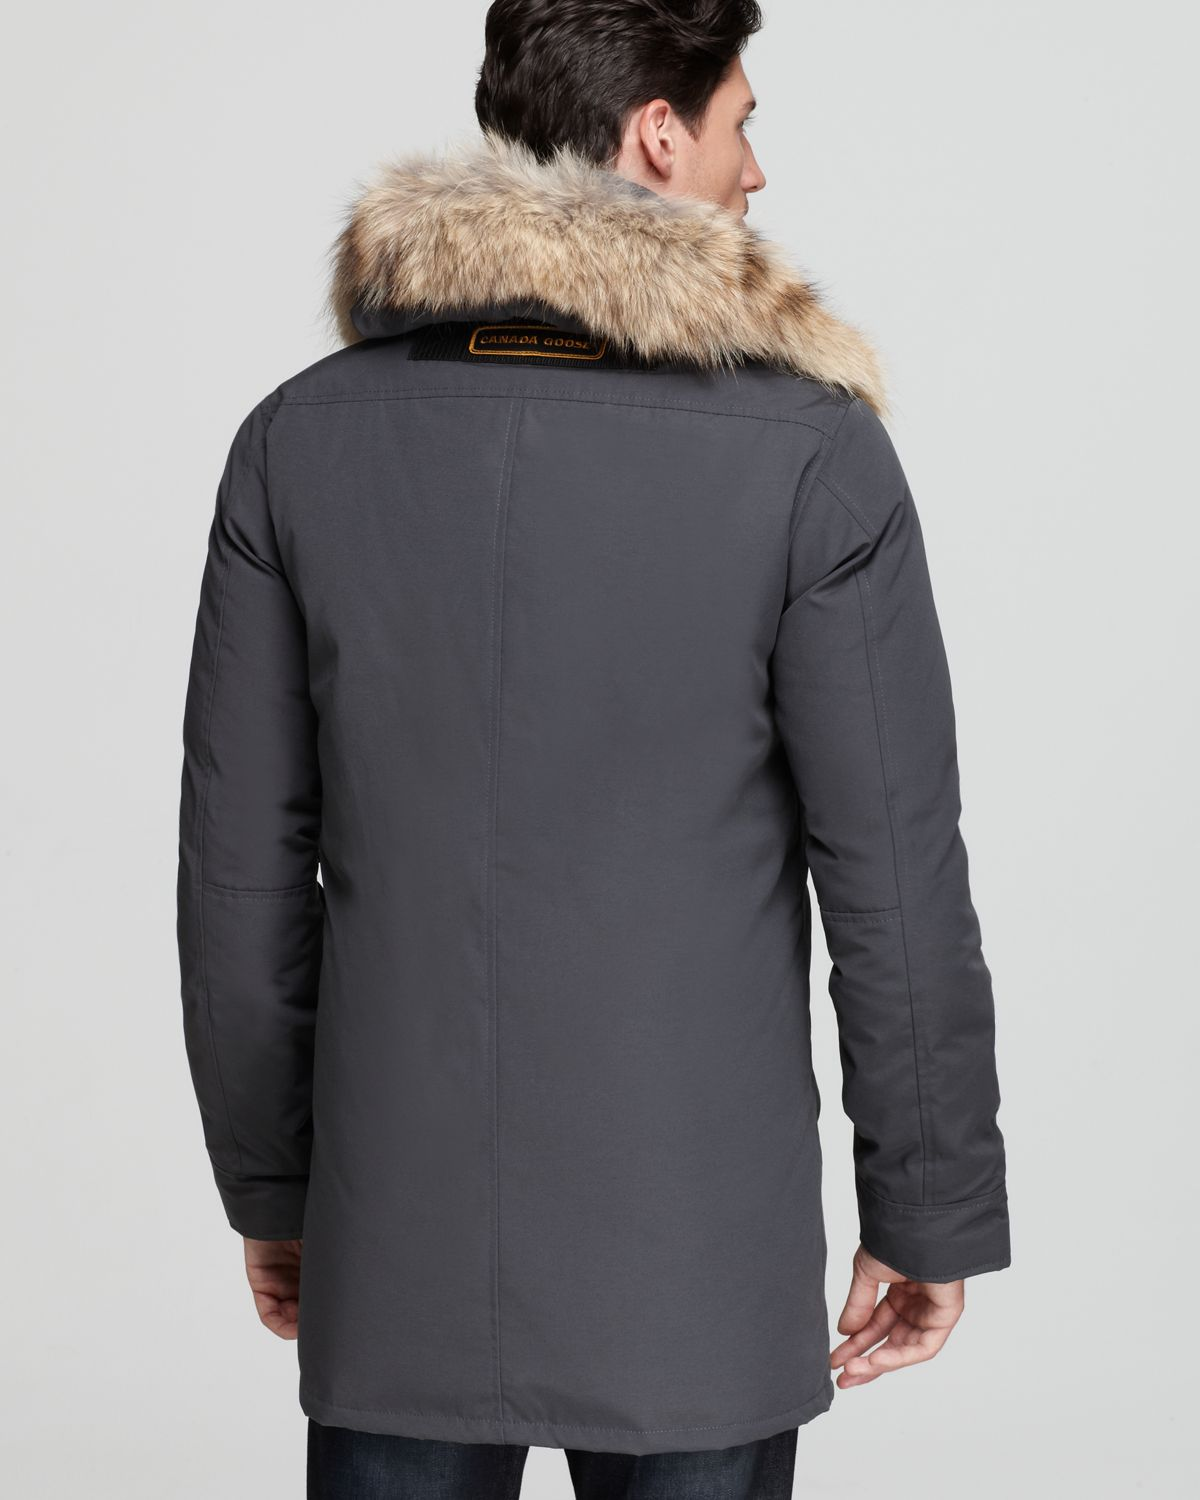 Canada Goose vest outlet authentic - Canada goose Chateau Parka with Fur Hood in Gray for Men (Graphite ...